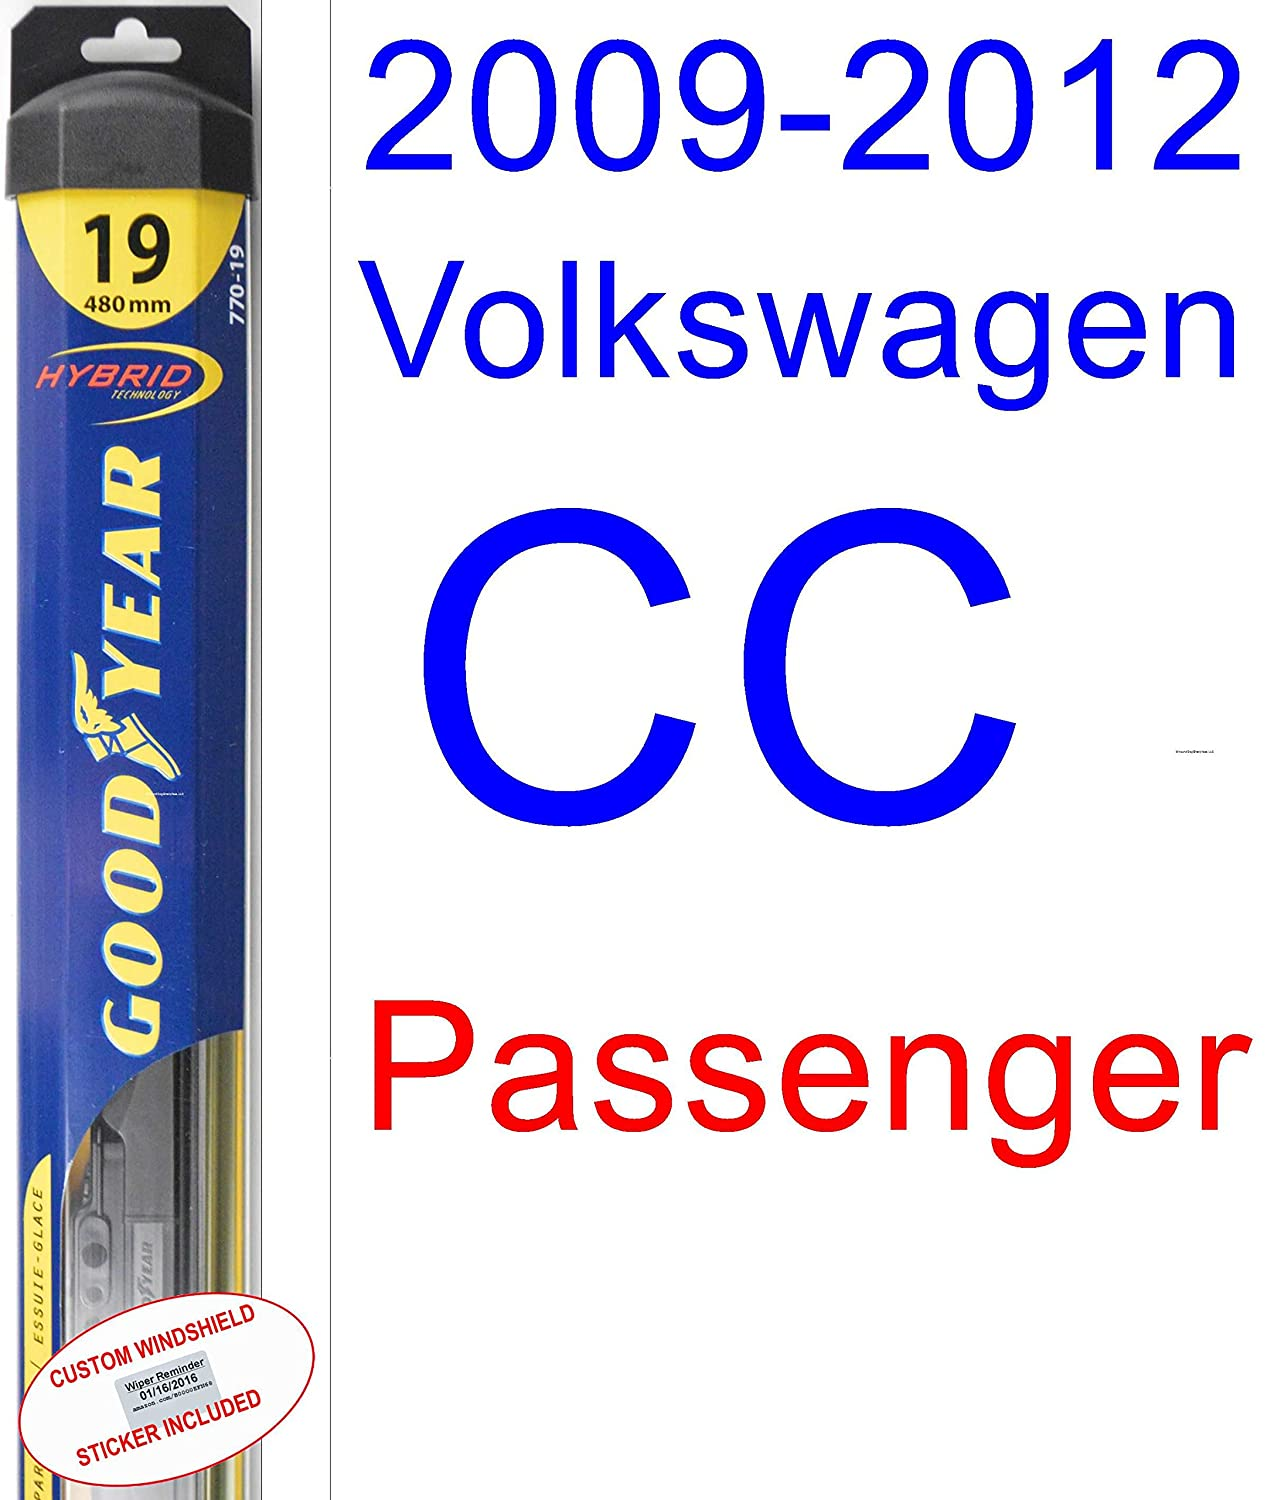 Amazon.com: 2009-2012 Volkswagen CC Wiper Blade (Passenger) (Goodyear Wiper Blades-Hybrid) (2010,2011): Automotive